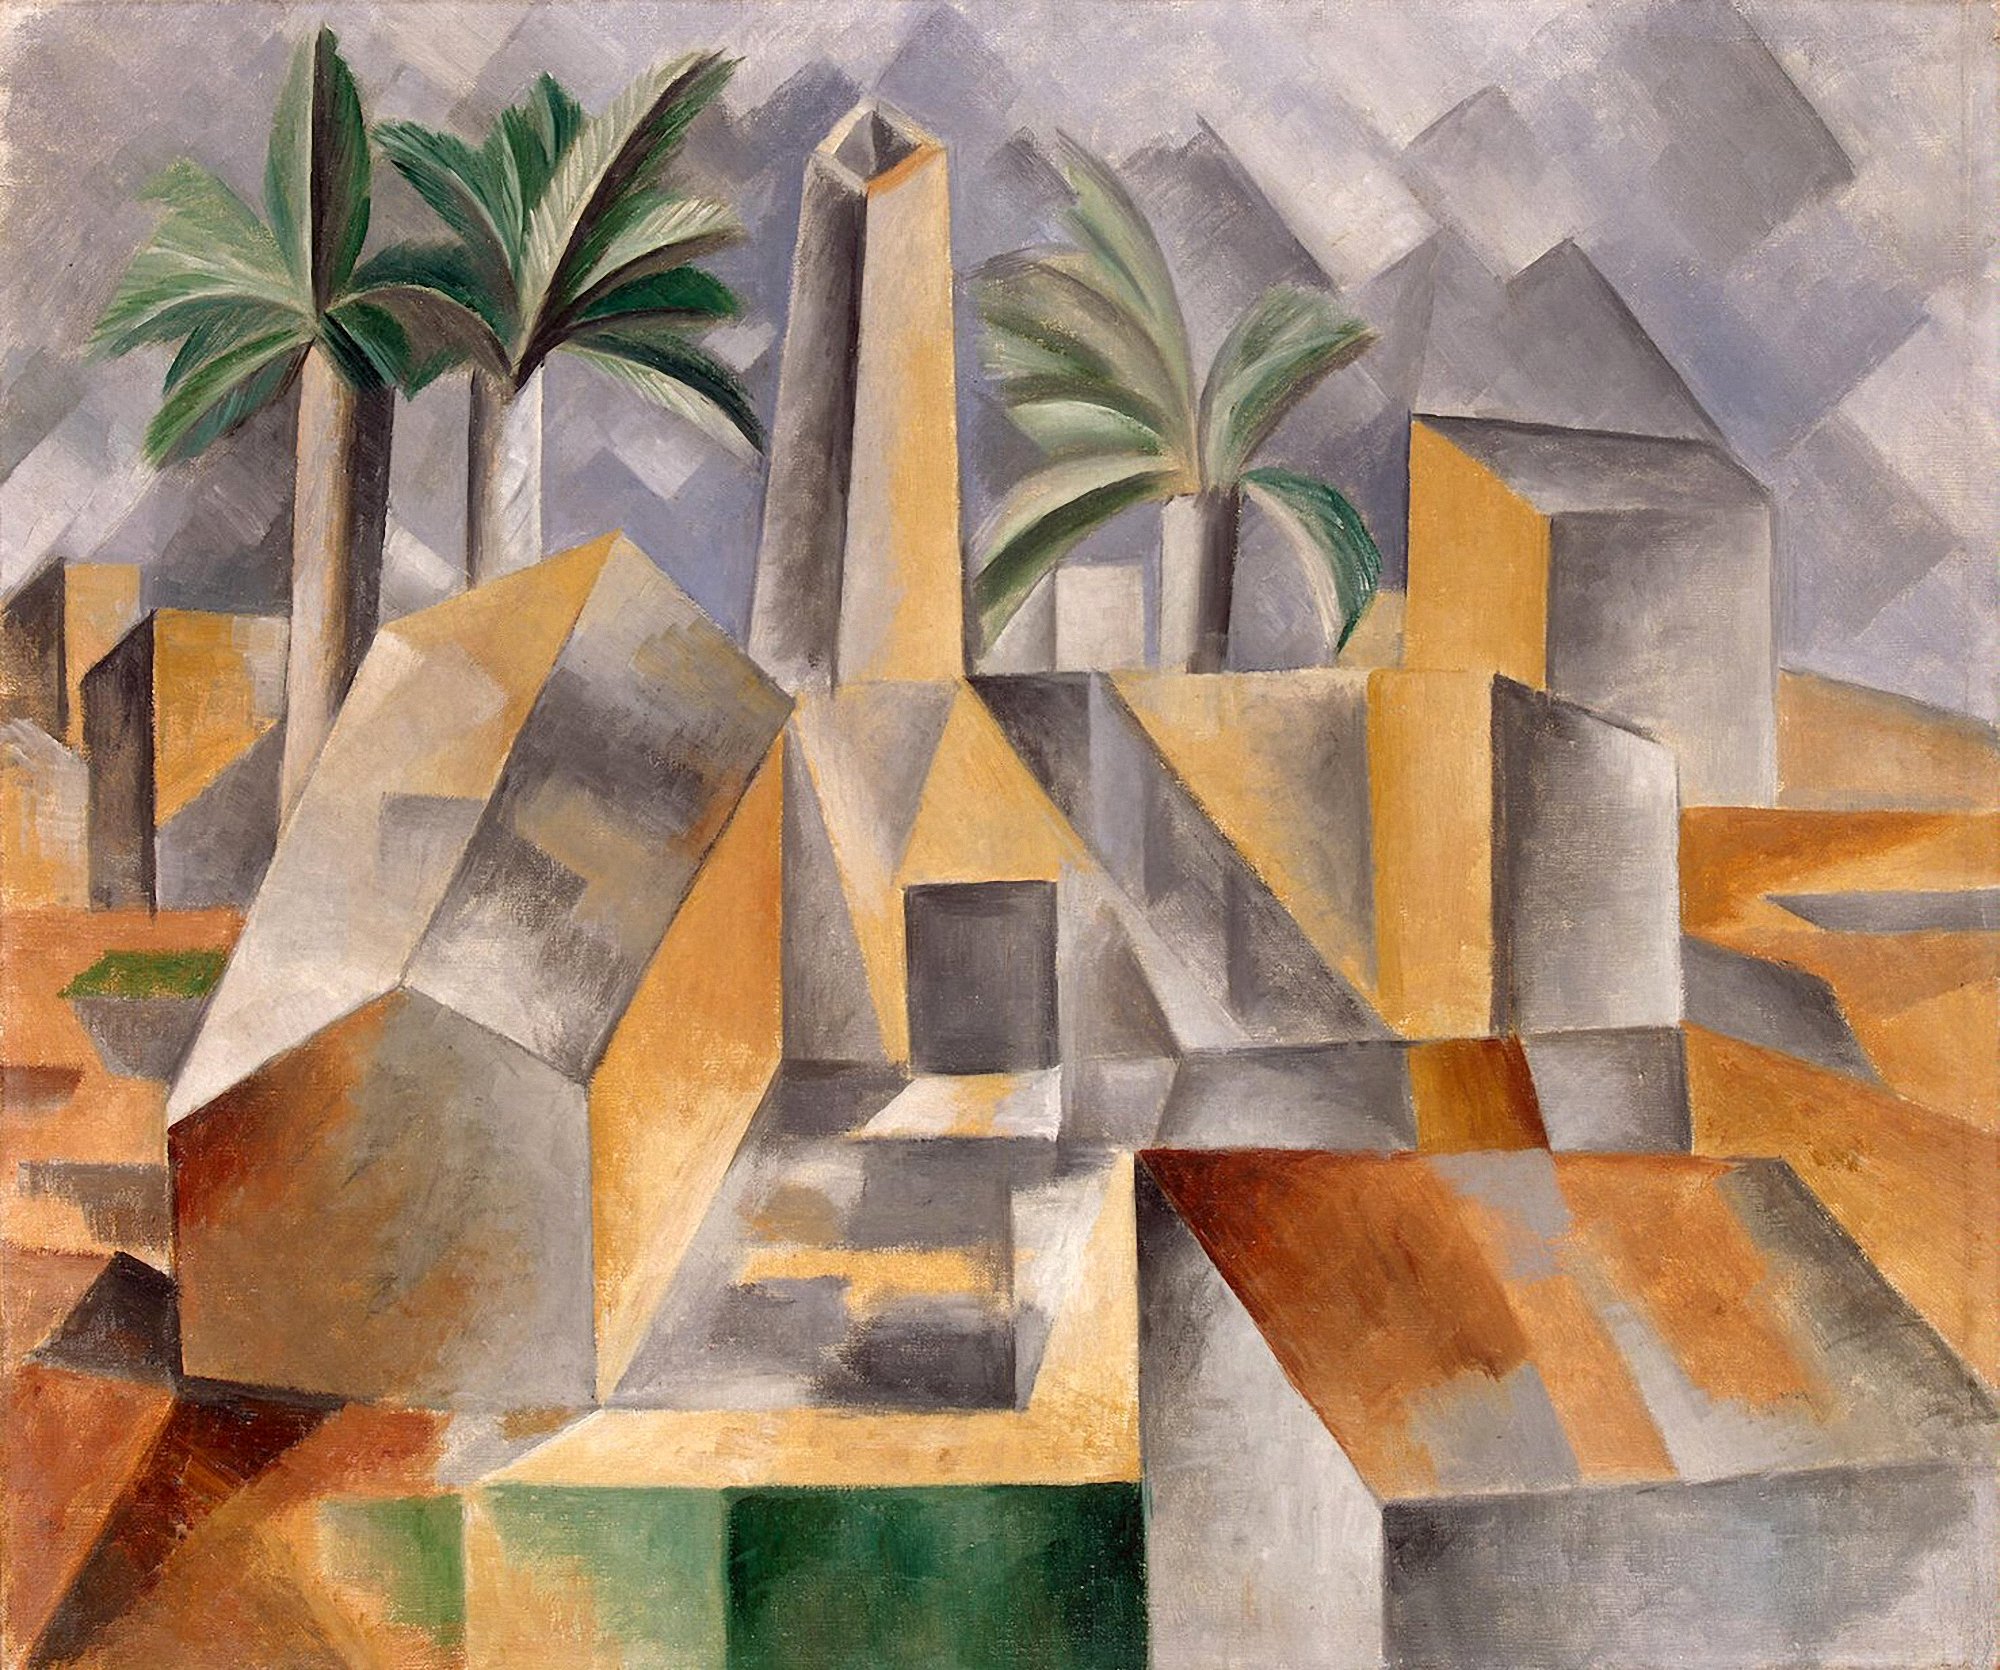 http://upload.wikimedia.org/wikipedia/en/8/8b/Pablo_Picasso,_1909,_Brick_Factory_at_Tortosa,_oil_on_canvas,_50.7_x_60.2_cm,_The_State_Hermitage_Museum,_Saint_Petersburg.jpg